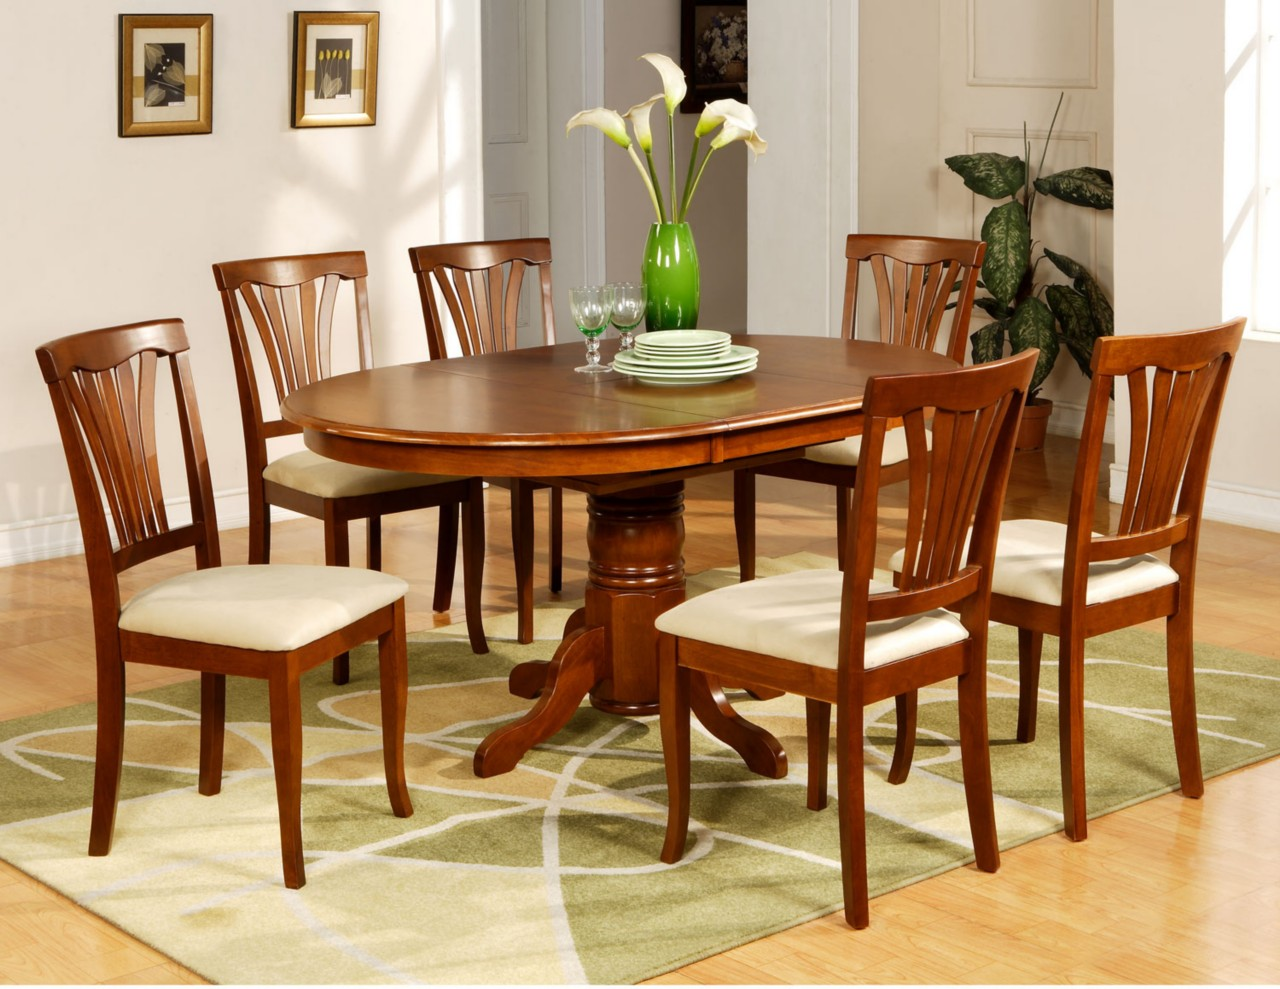 Outstanding Oval Dining Room Tables and Chairs 1280 x 989 · 252 kB · jpeg